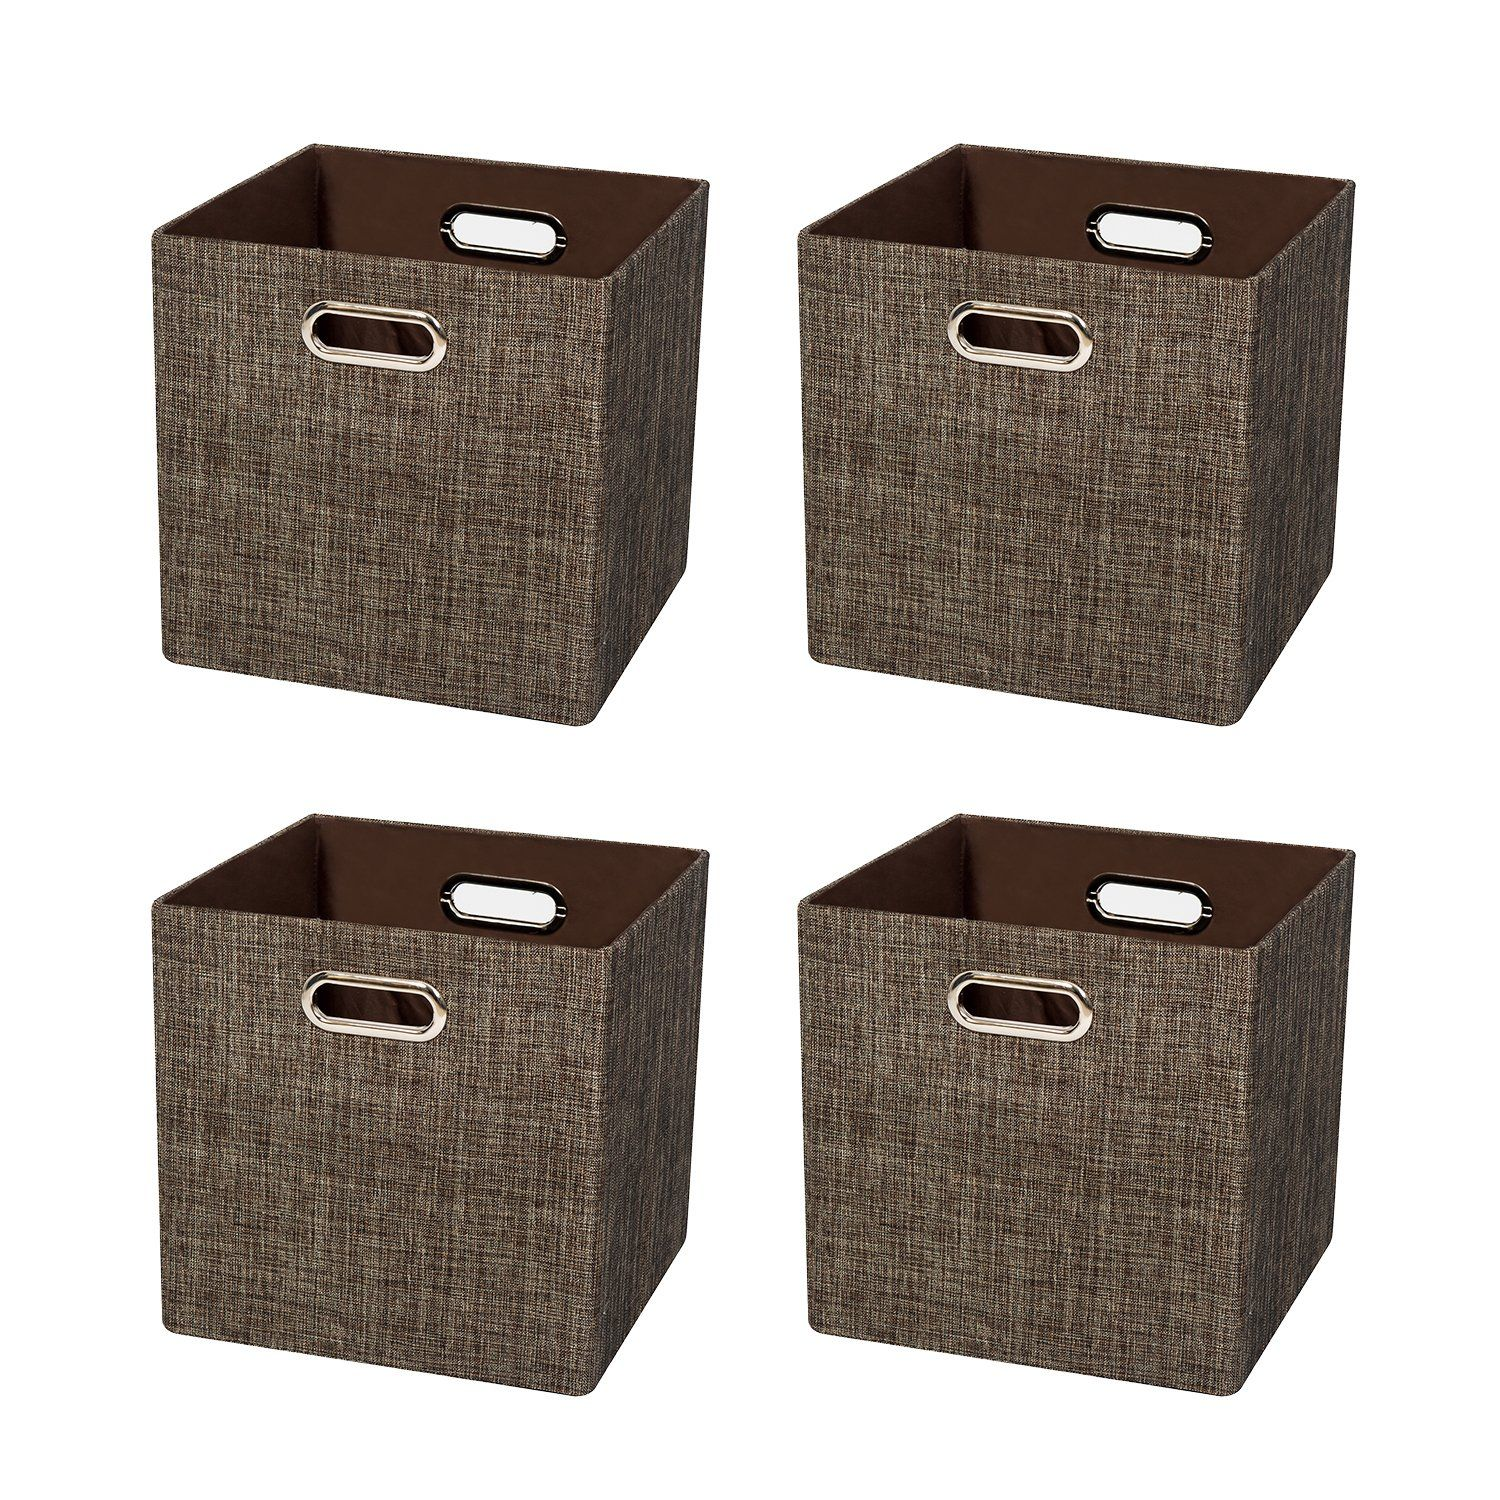 Posprica Cube Organizers Storage Bin Basket Boxes Container Cabinet Drawer For Bedroom Closet Toys Laundry 4 Cube Storage Collapsible Storage Cubes Cubby Bins